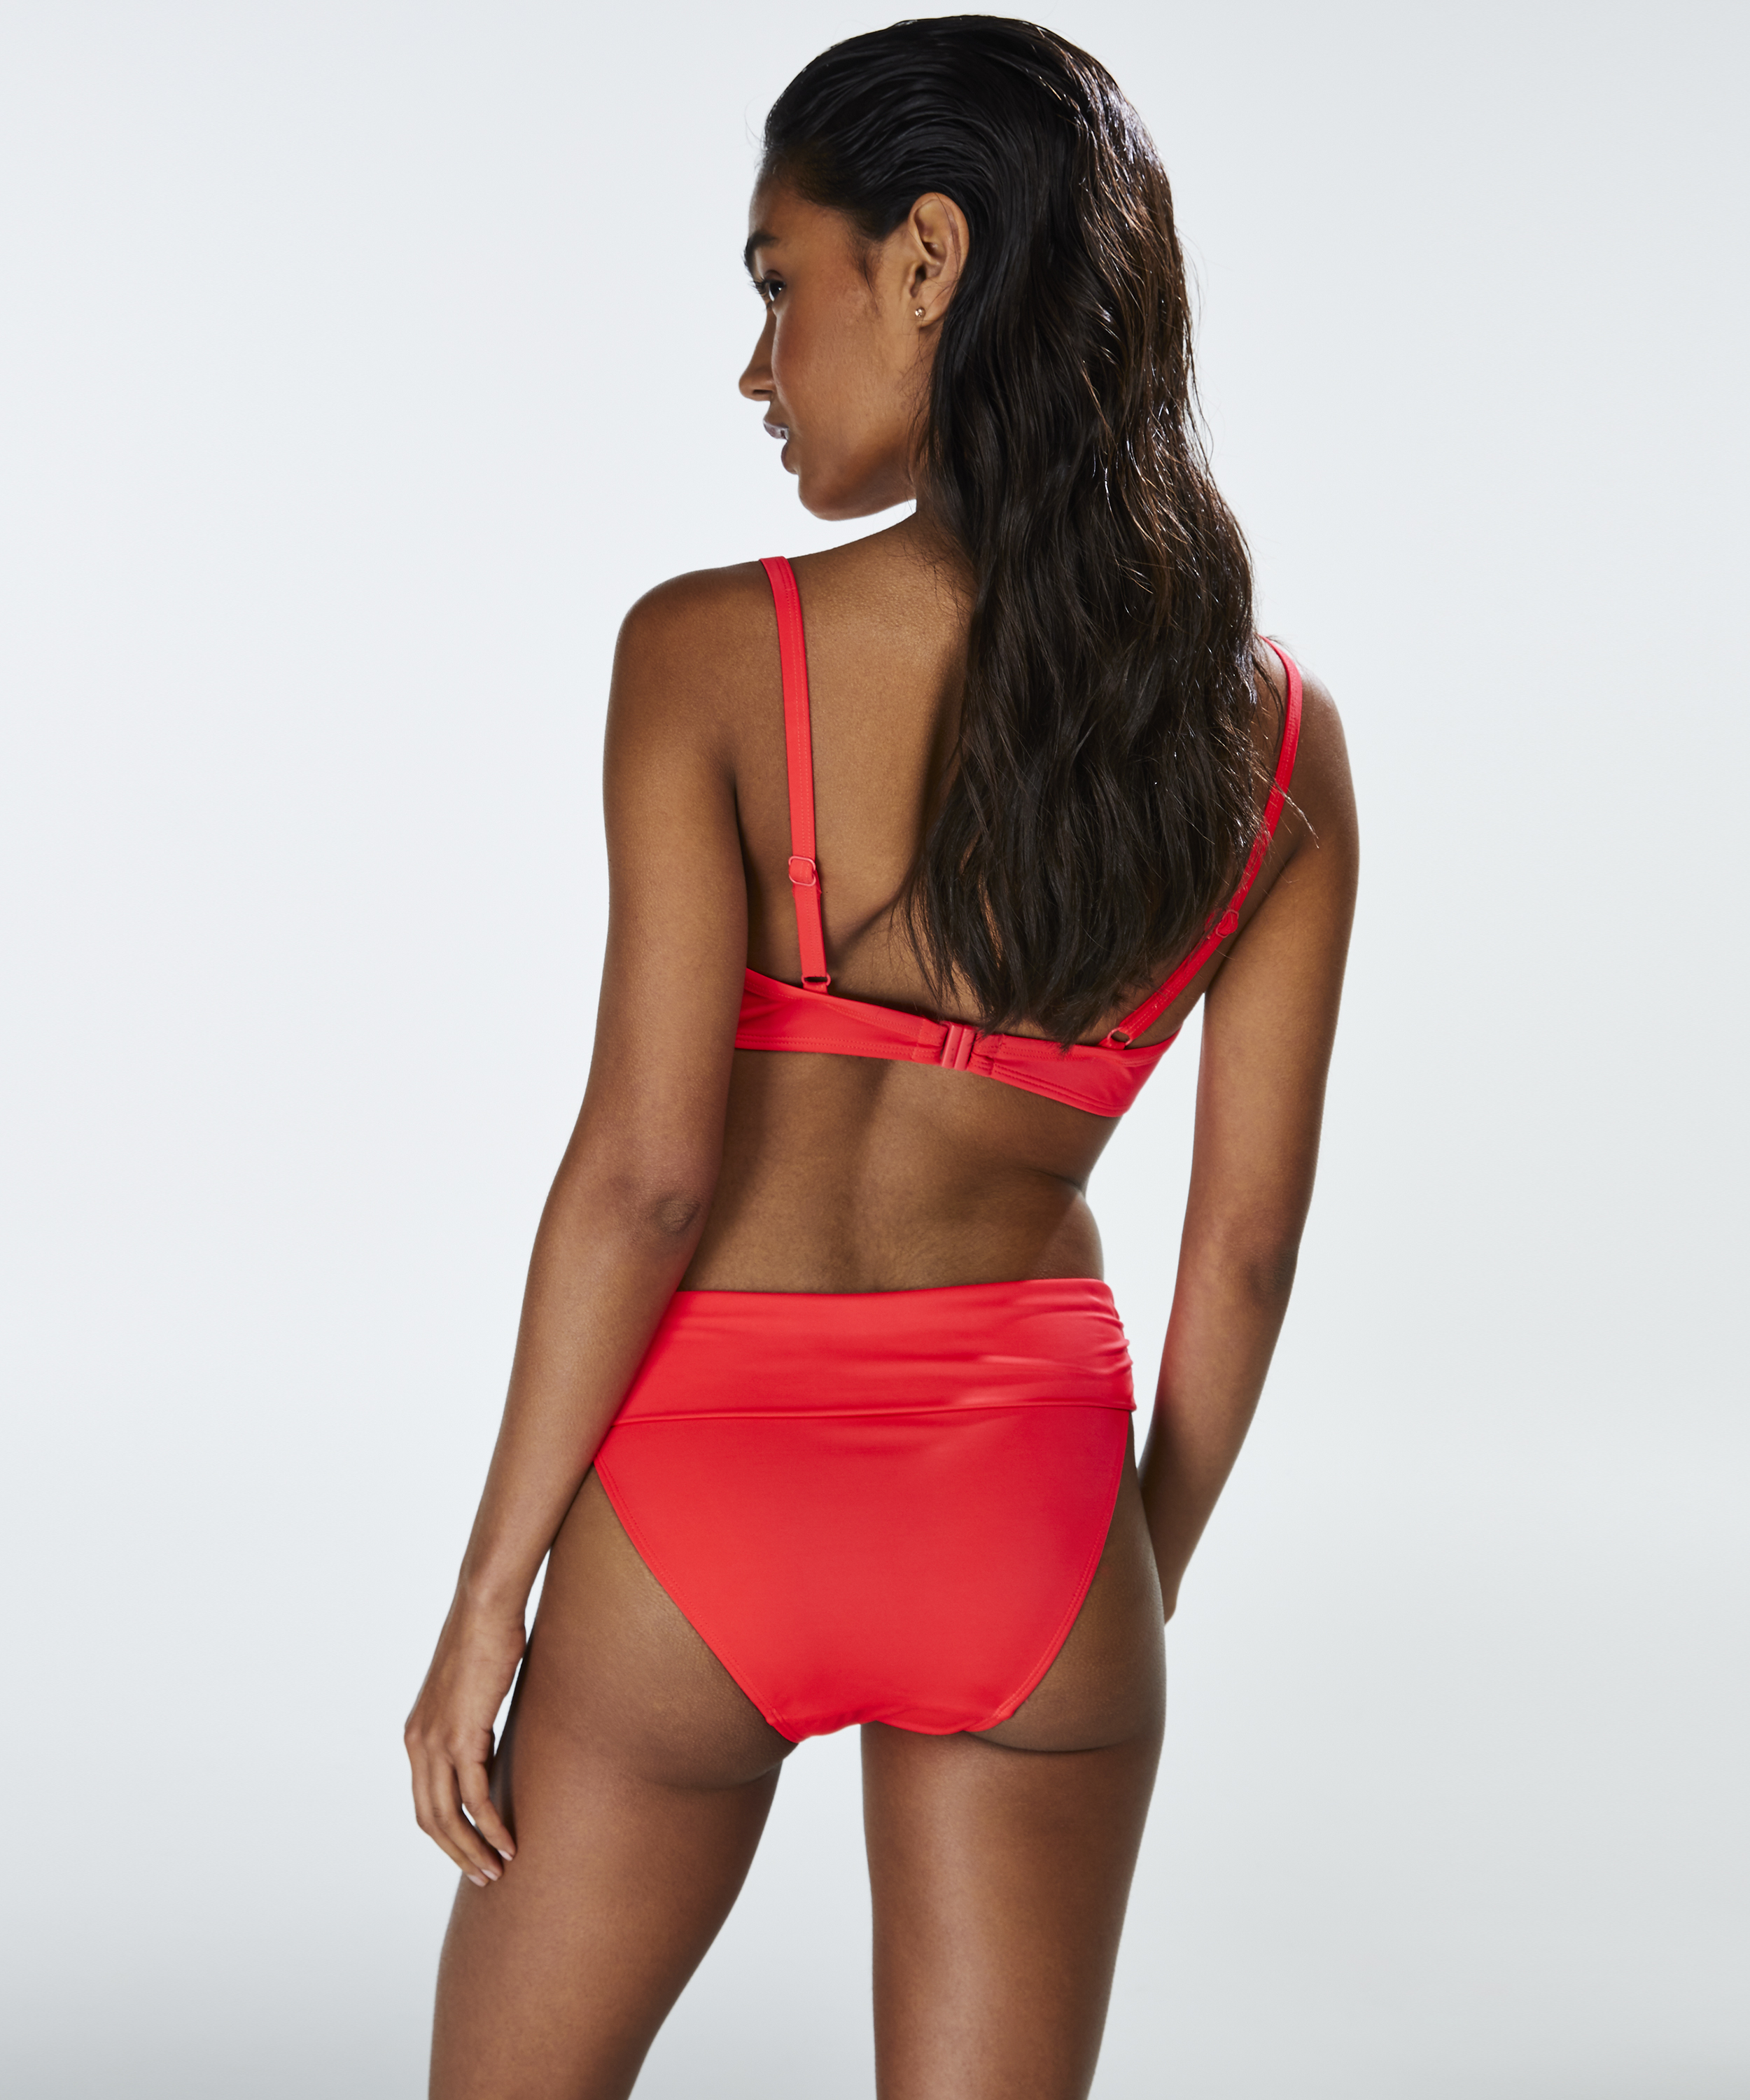 Foldover Bikinislip Sunset Dream, Rot, main